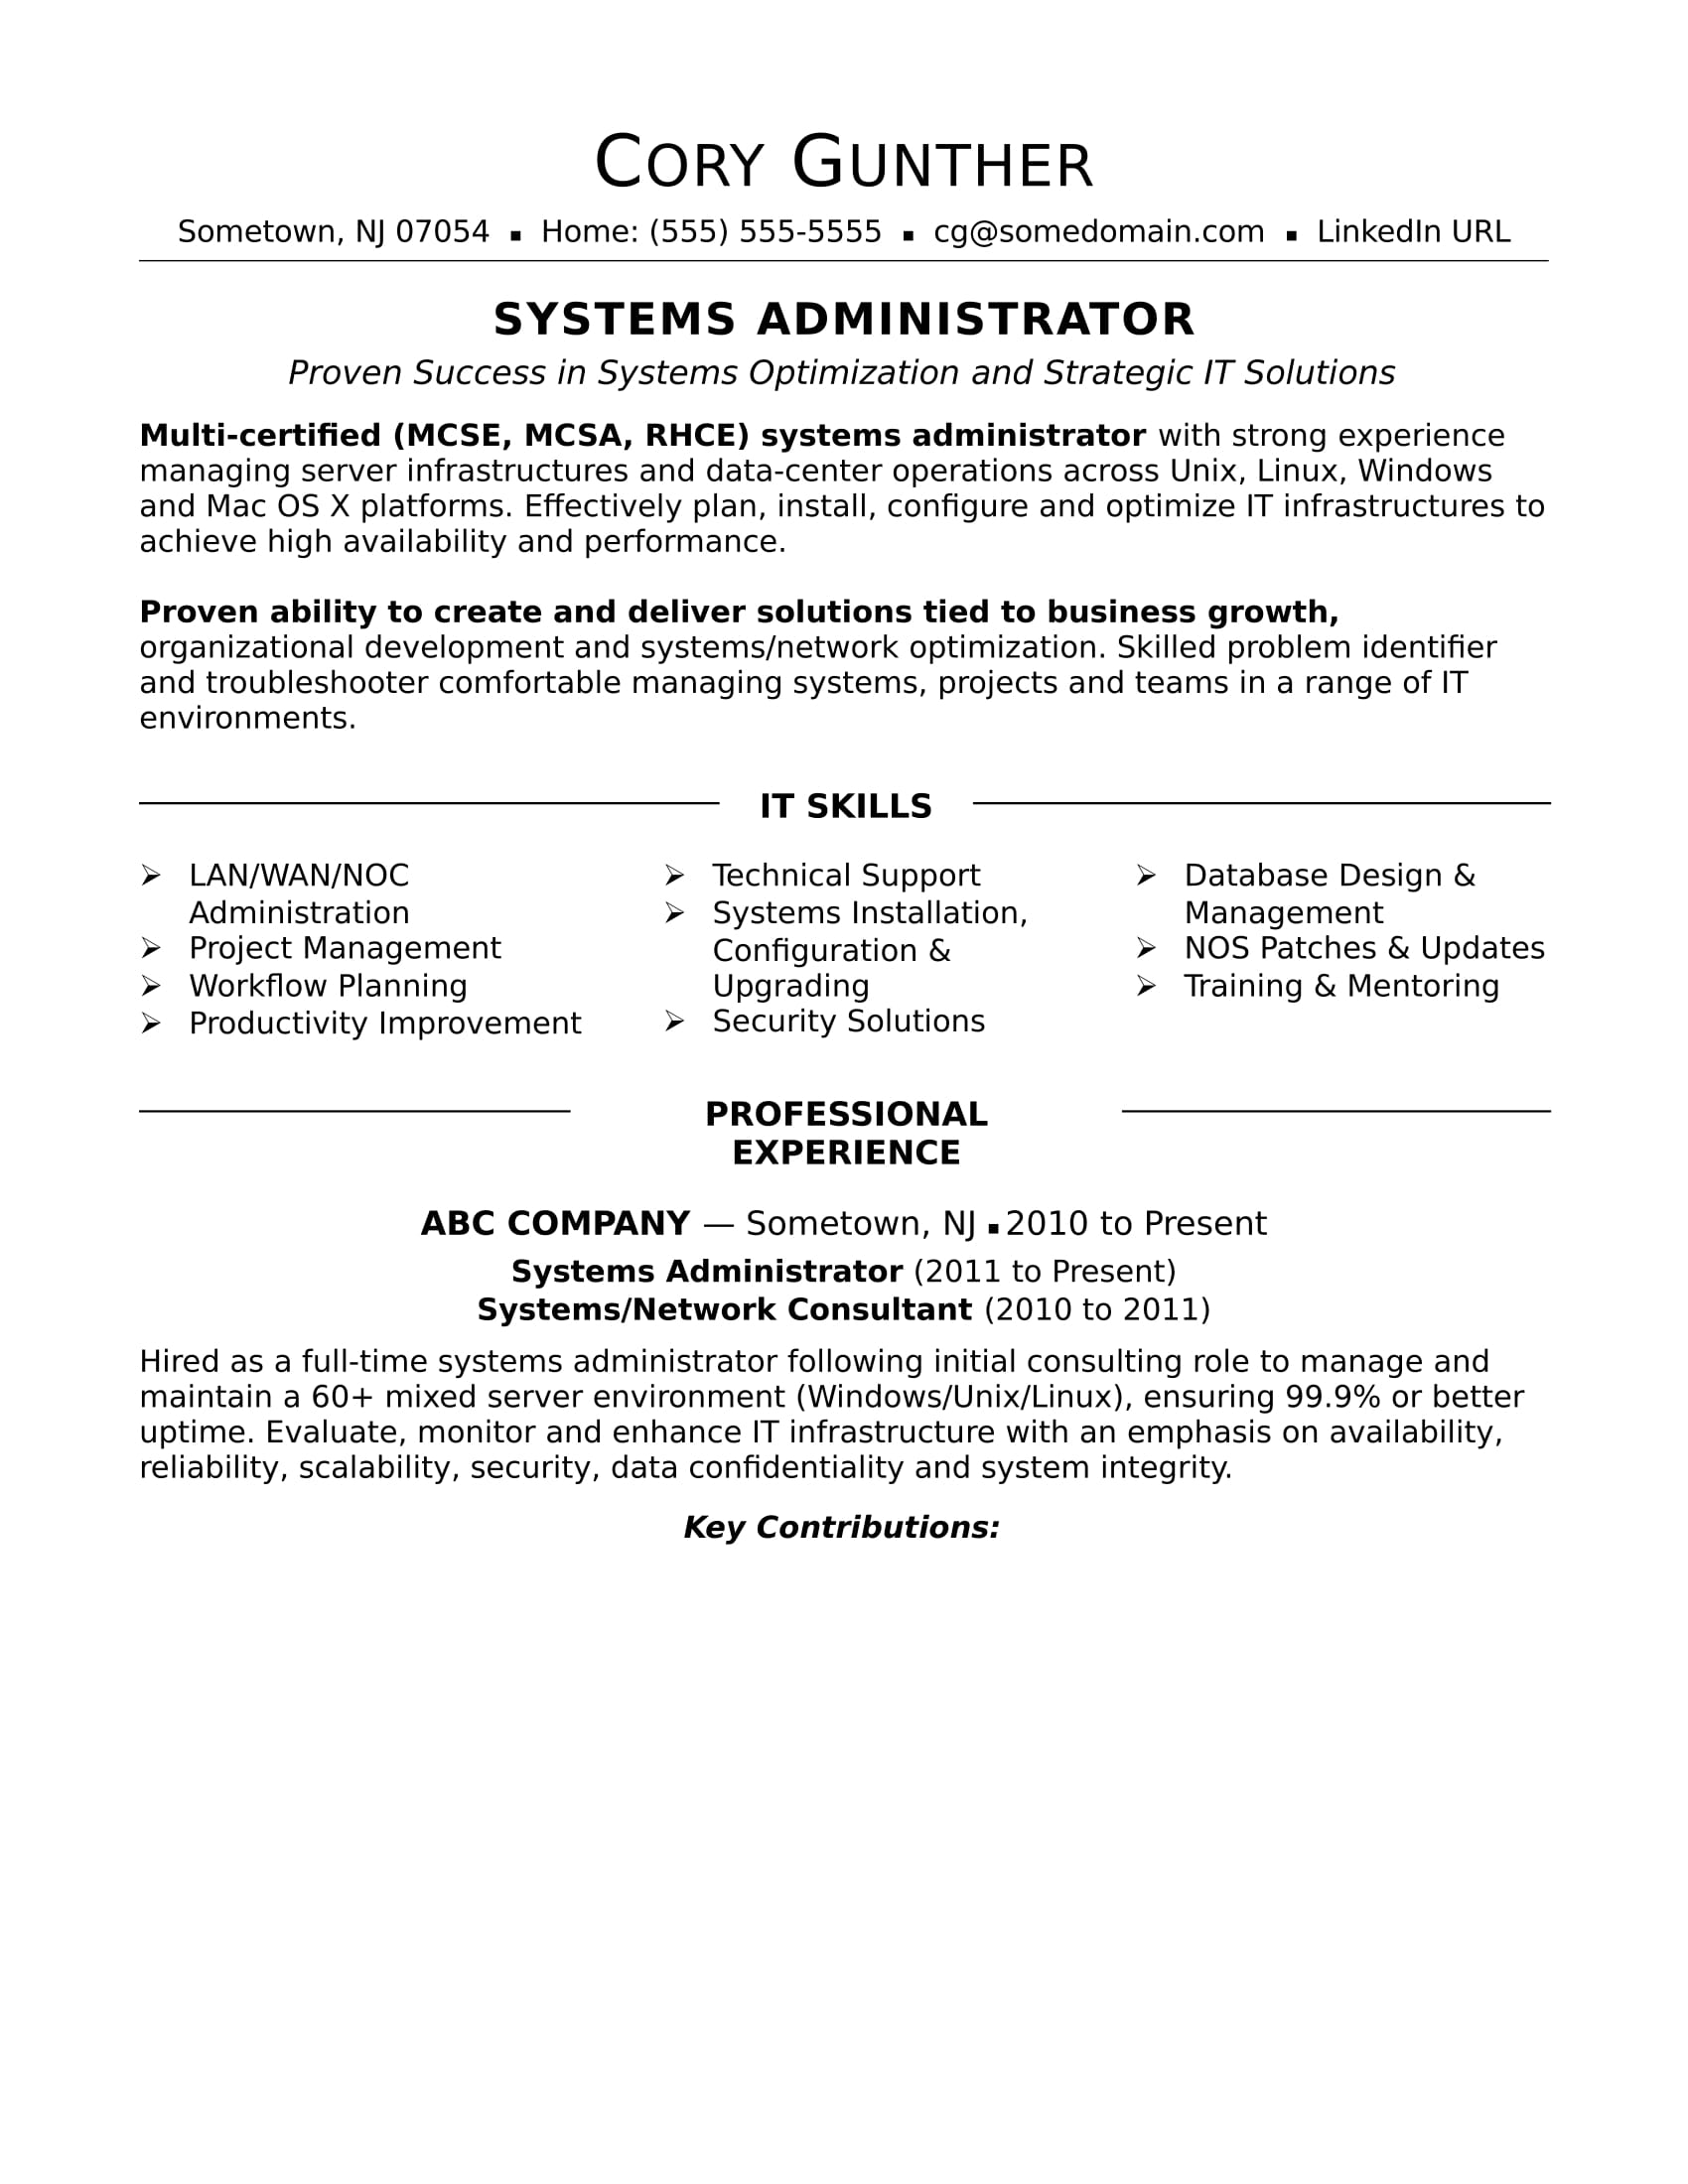 sample resume for an experienced systems administrator monster system examples medical Resume System Administrator Resume